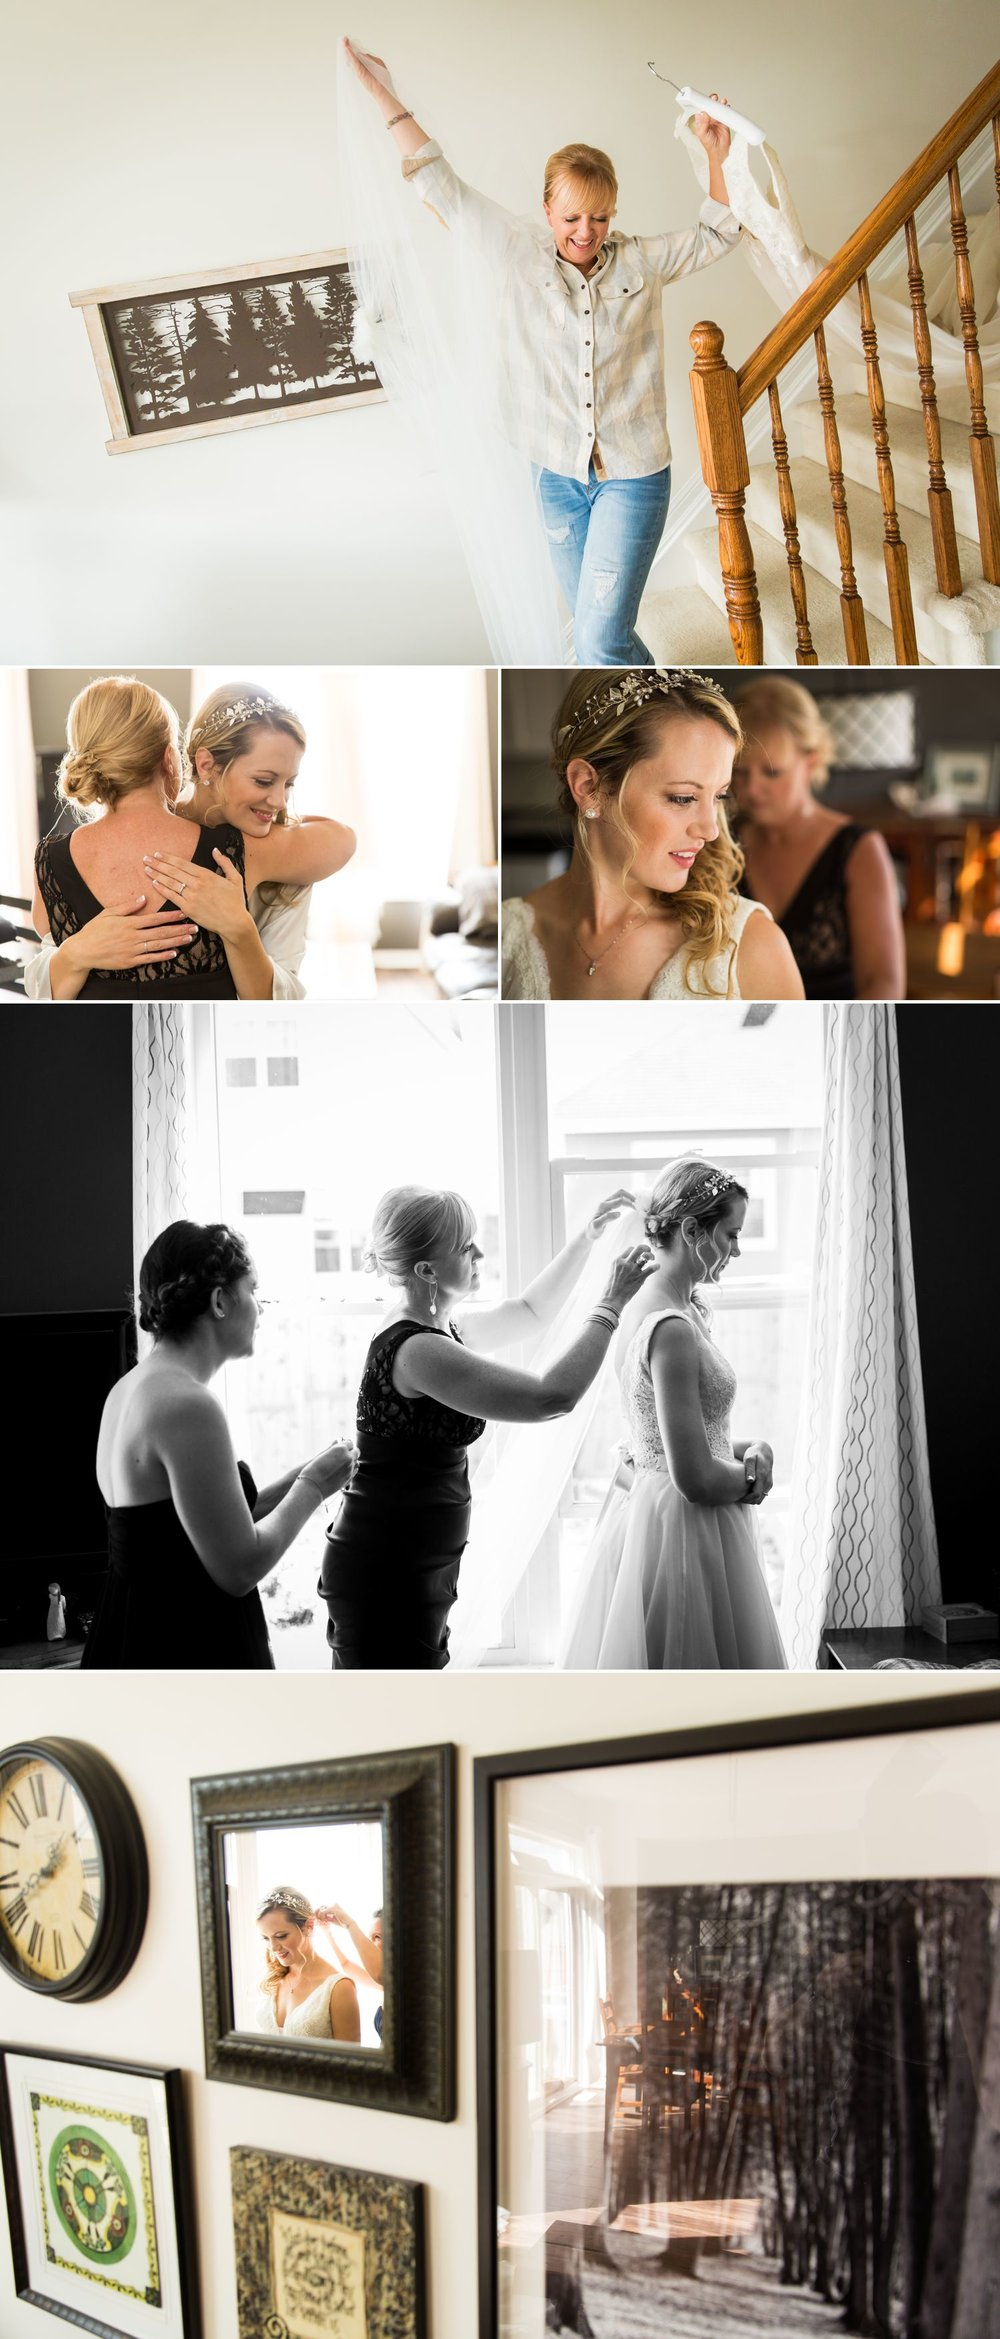 The bride getting ready at home with her bridesmaid and mother